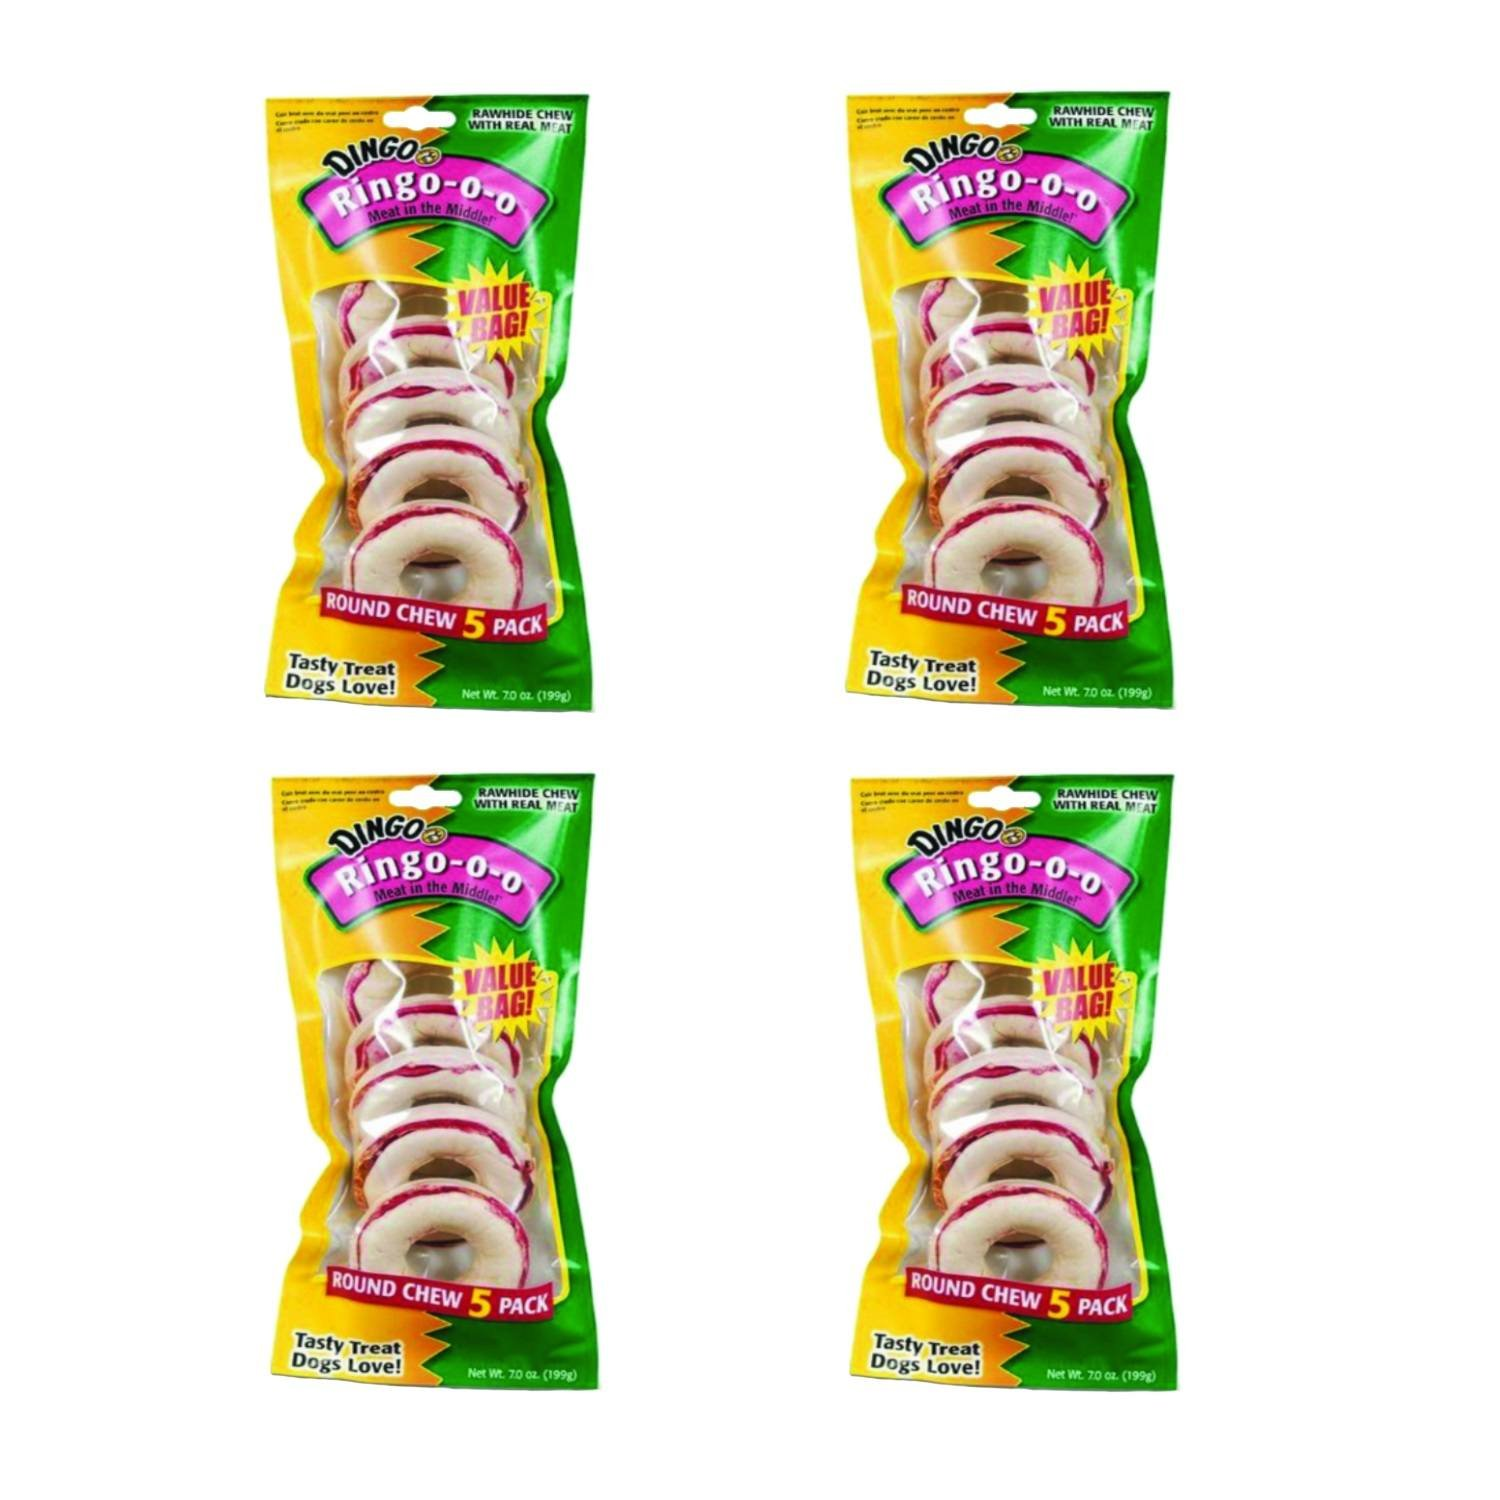 20-Count Dingo Ringo Rawhide Treats (Ringo-o-o), 20-Count